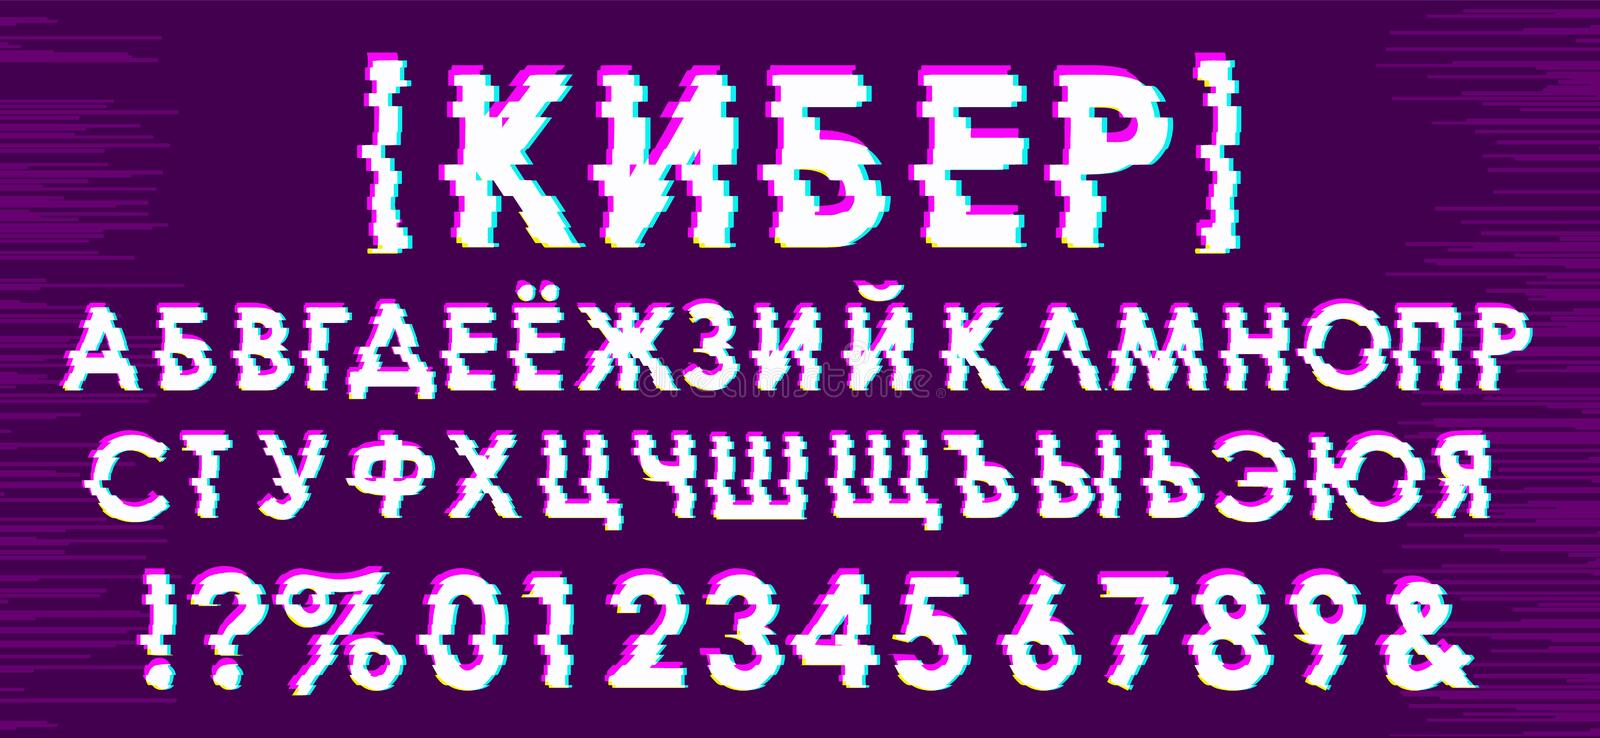 Trendy glitch effect cyrillic alphabet. Cyber is written in Russian. royalty free illustration